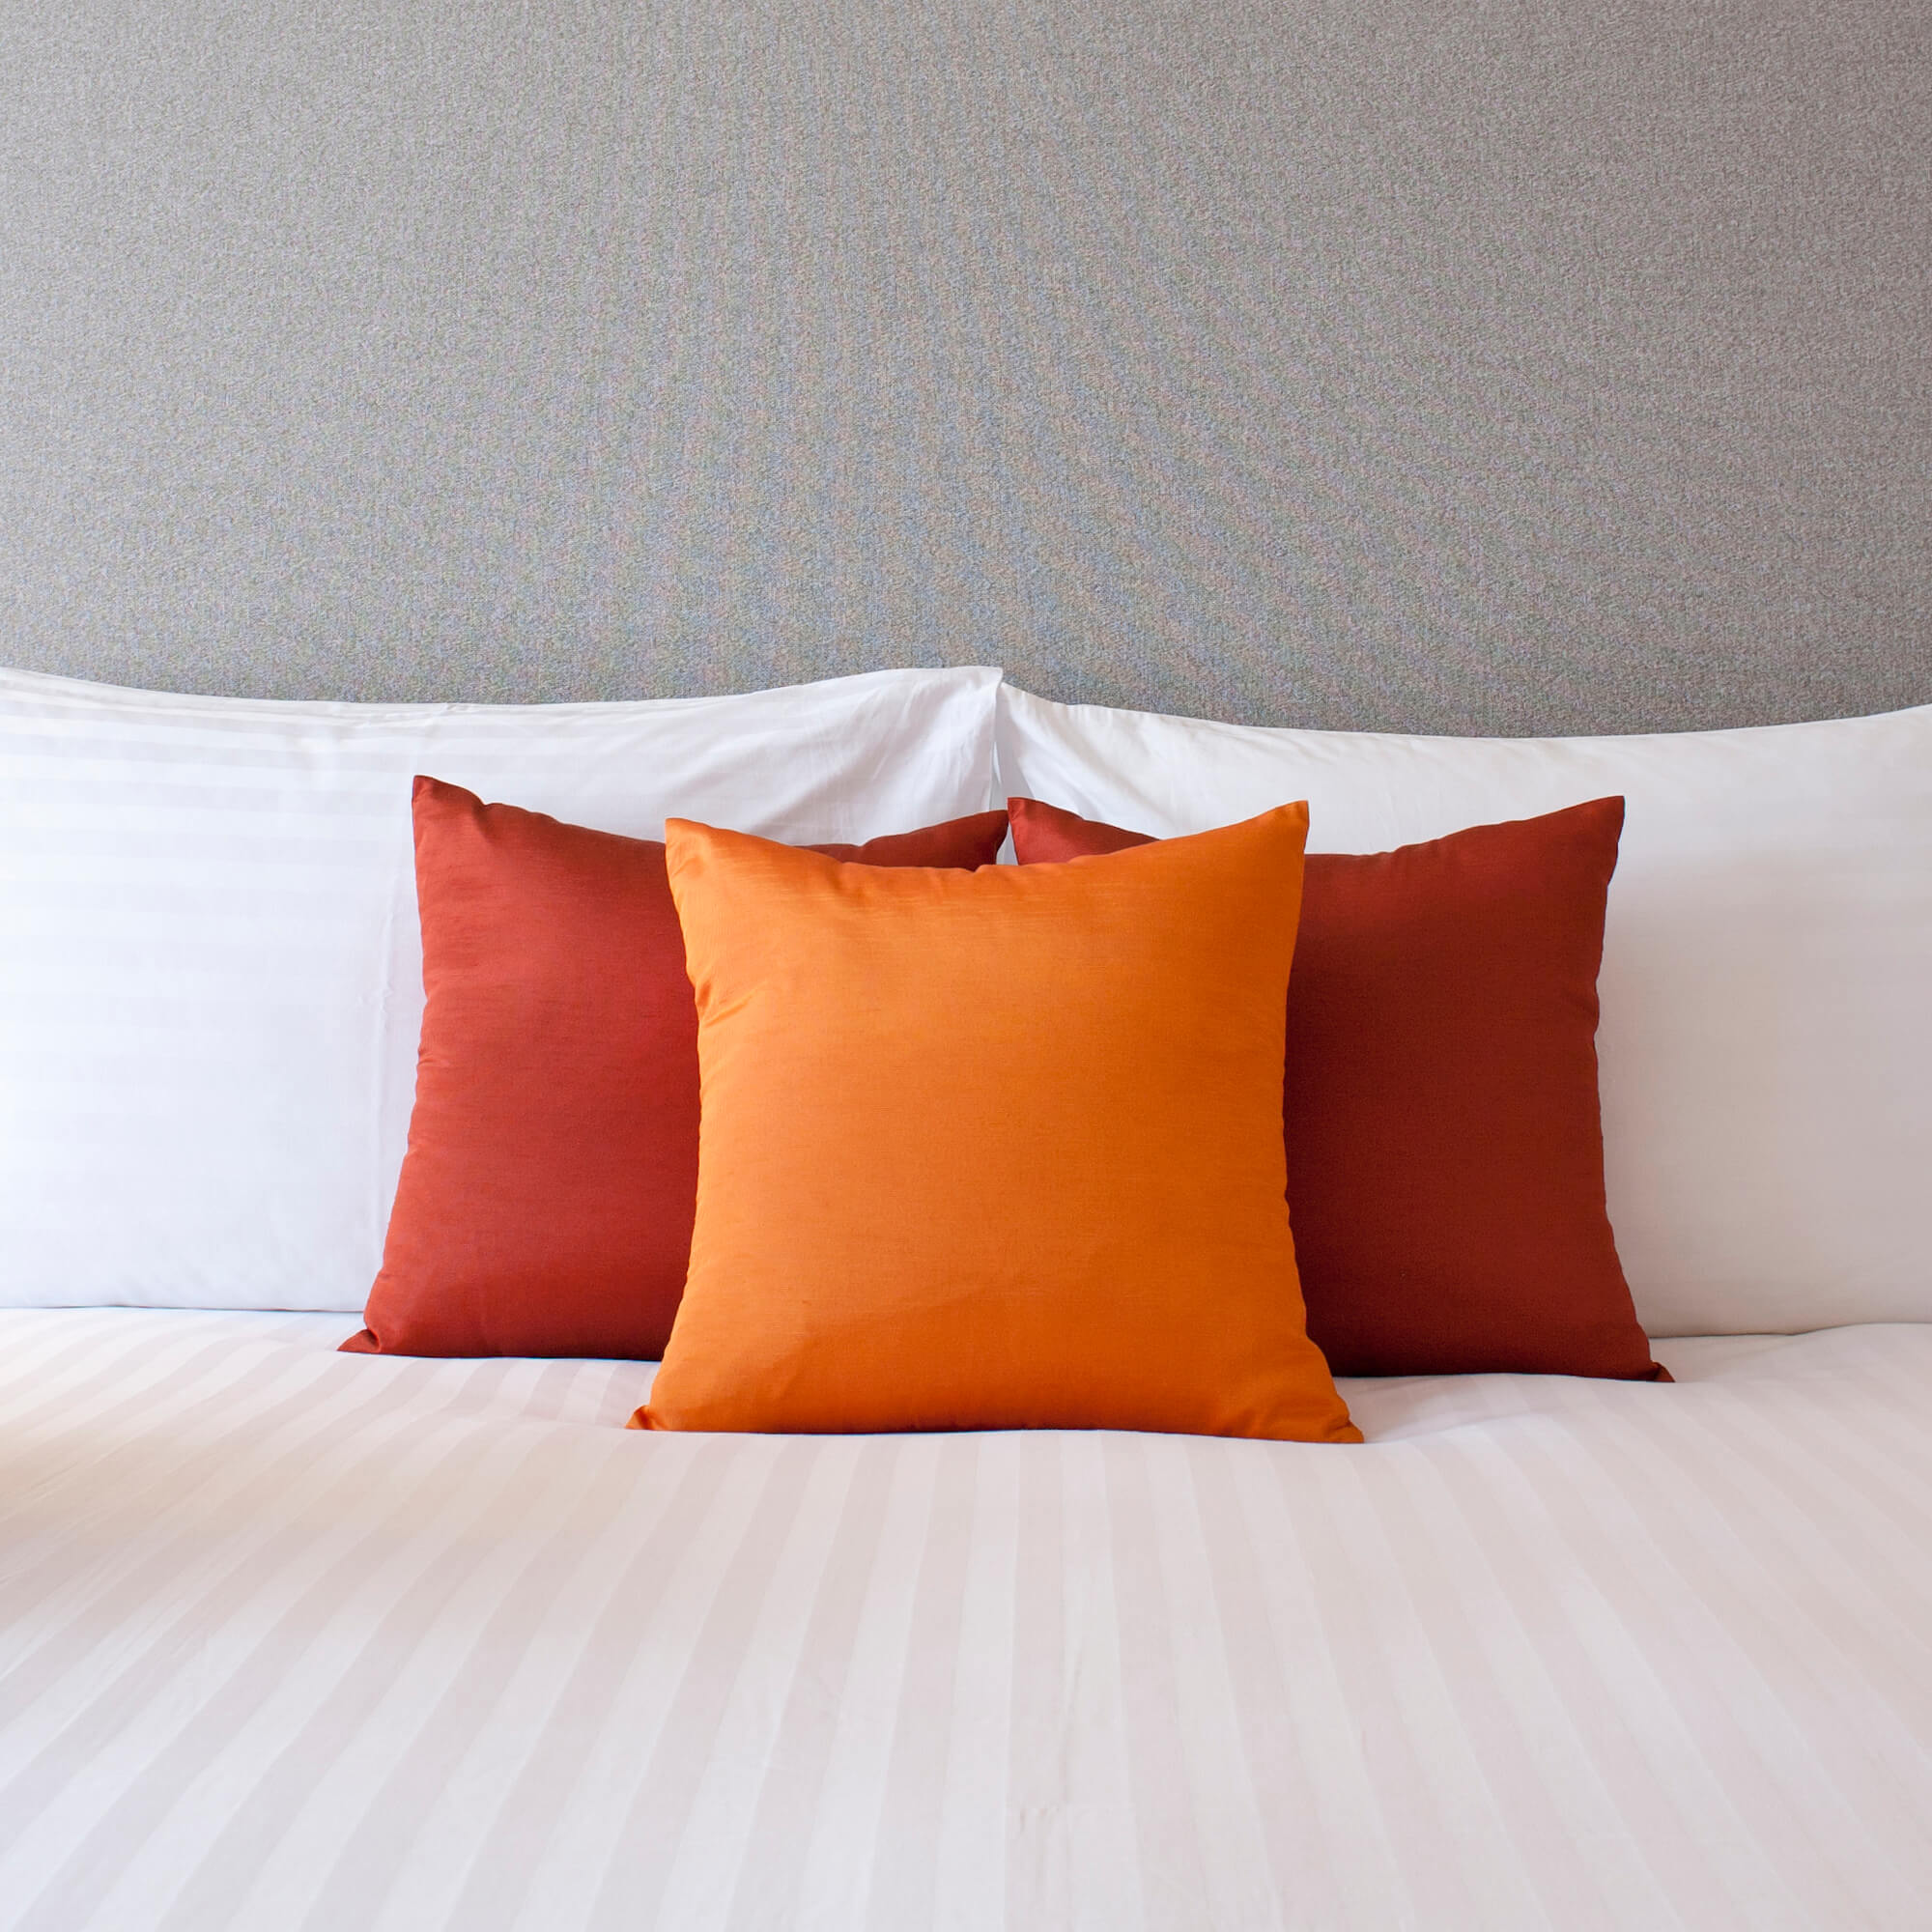 A hotel bed with three colorful pillows